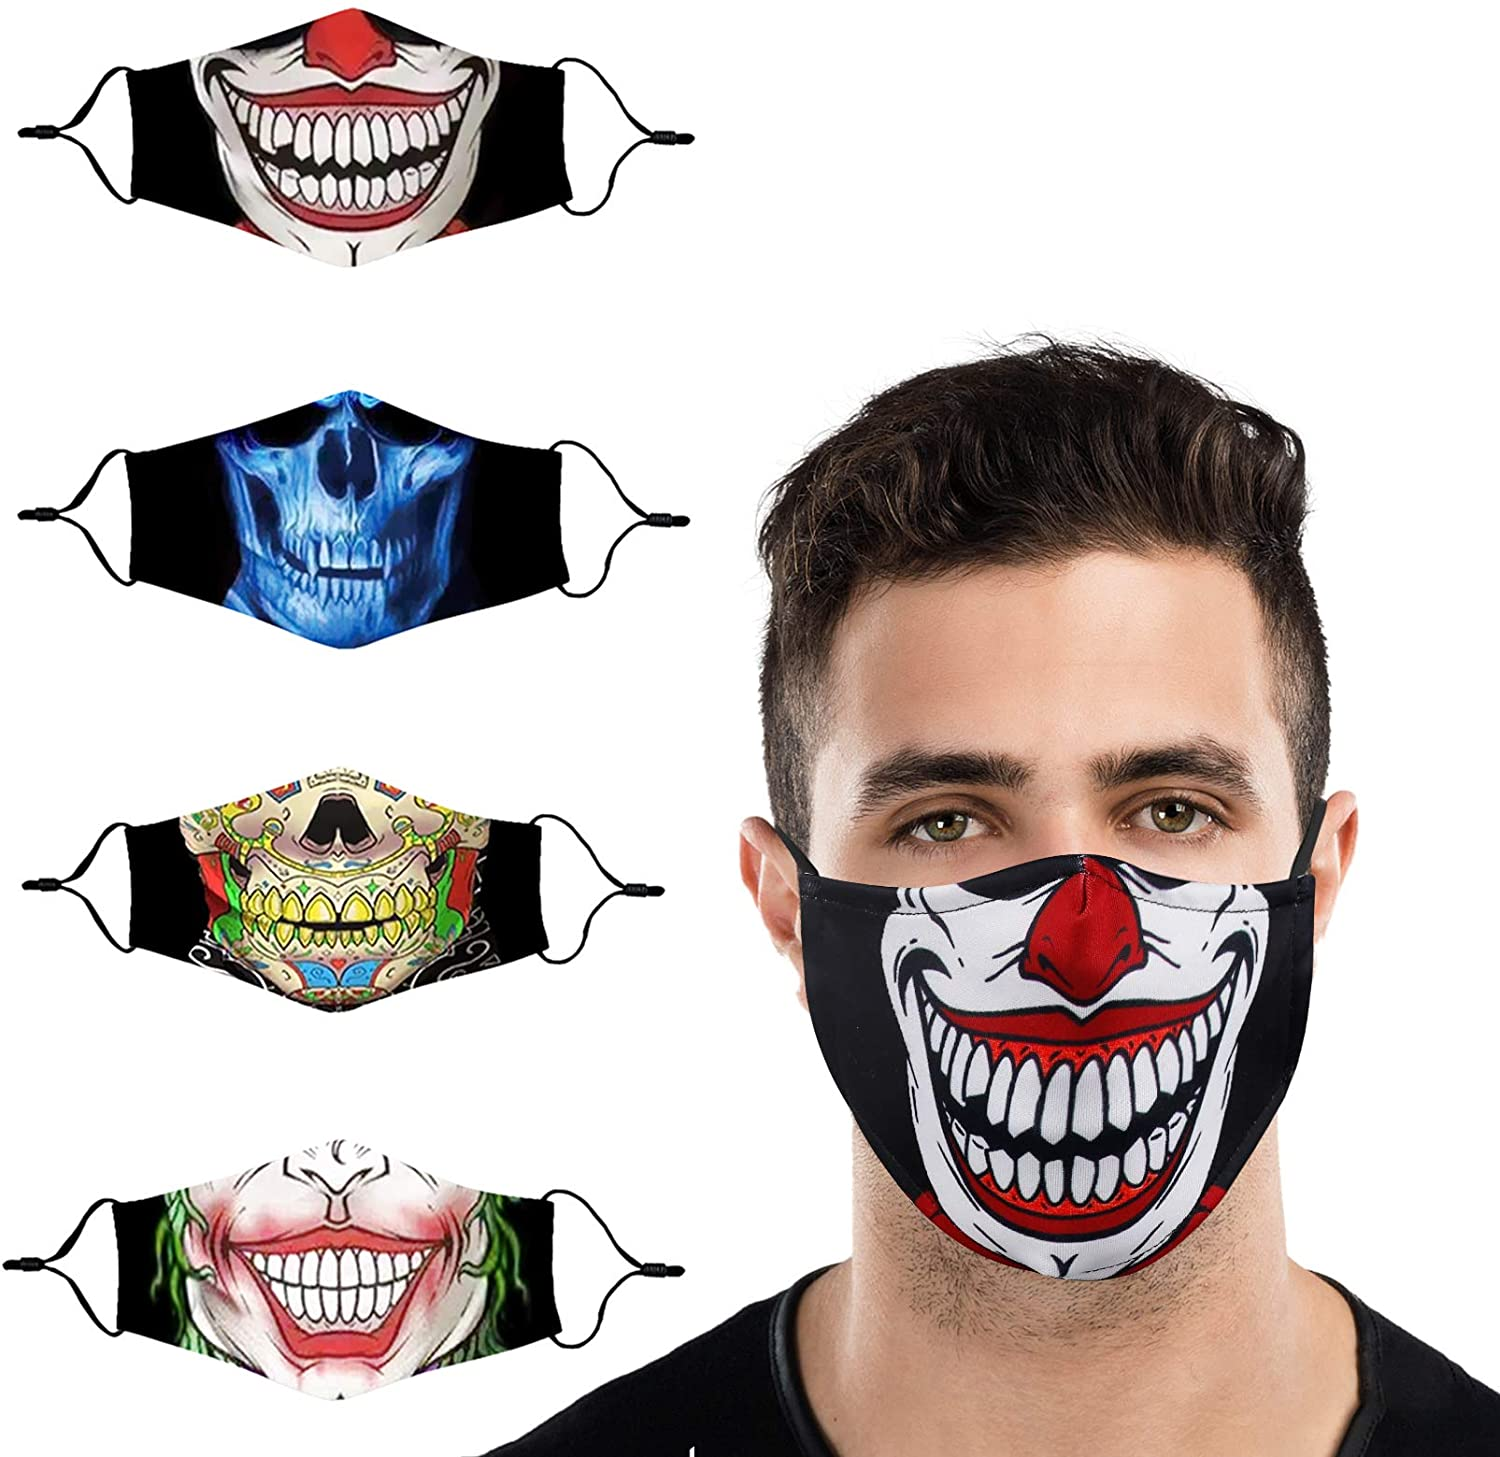 Gyothrig Funny Face Mask Reusable Washable Cotton Fabric for Dust Production Cloth Breathable Cute Coverings for Women Adult Men Fashion Lightweight Decorative Halloween Mascarillas 4 Pack